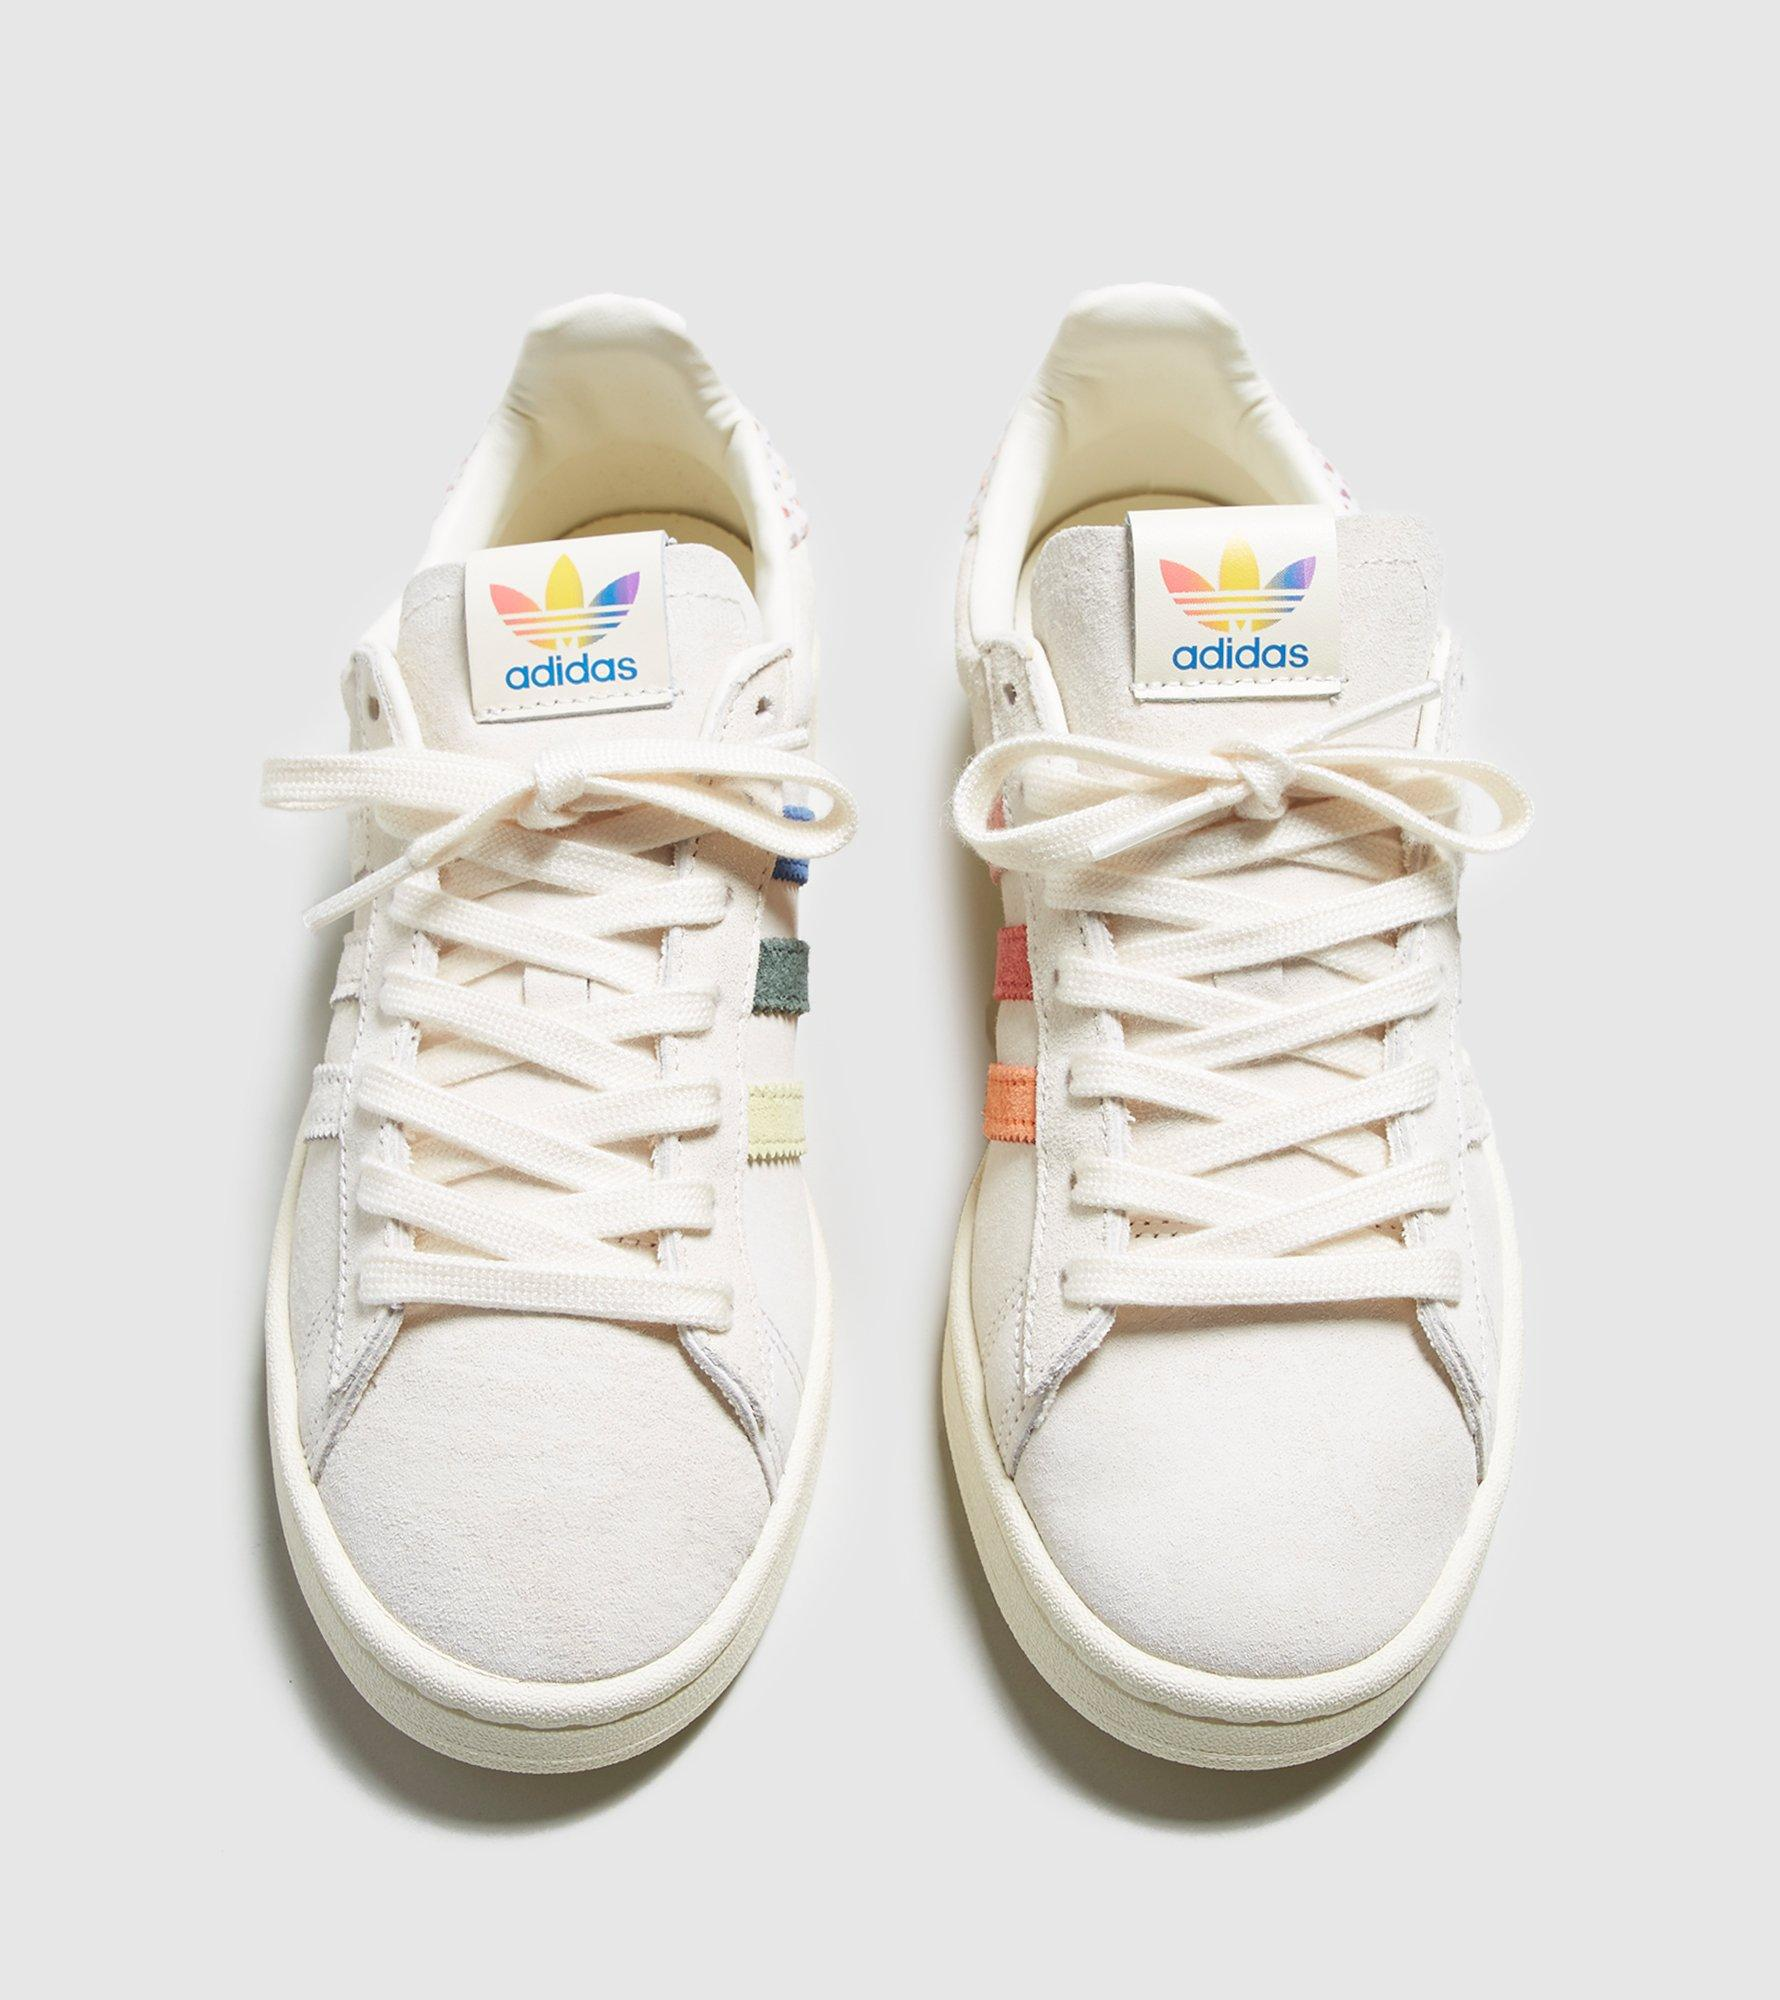 b43f4d2dea3 Adidas Originals White Campus Pride Women's